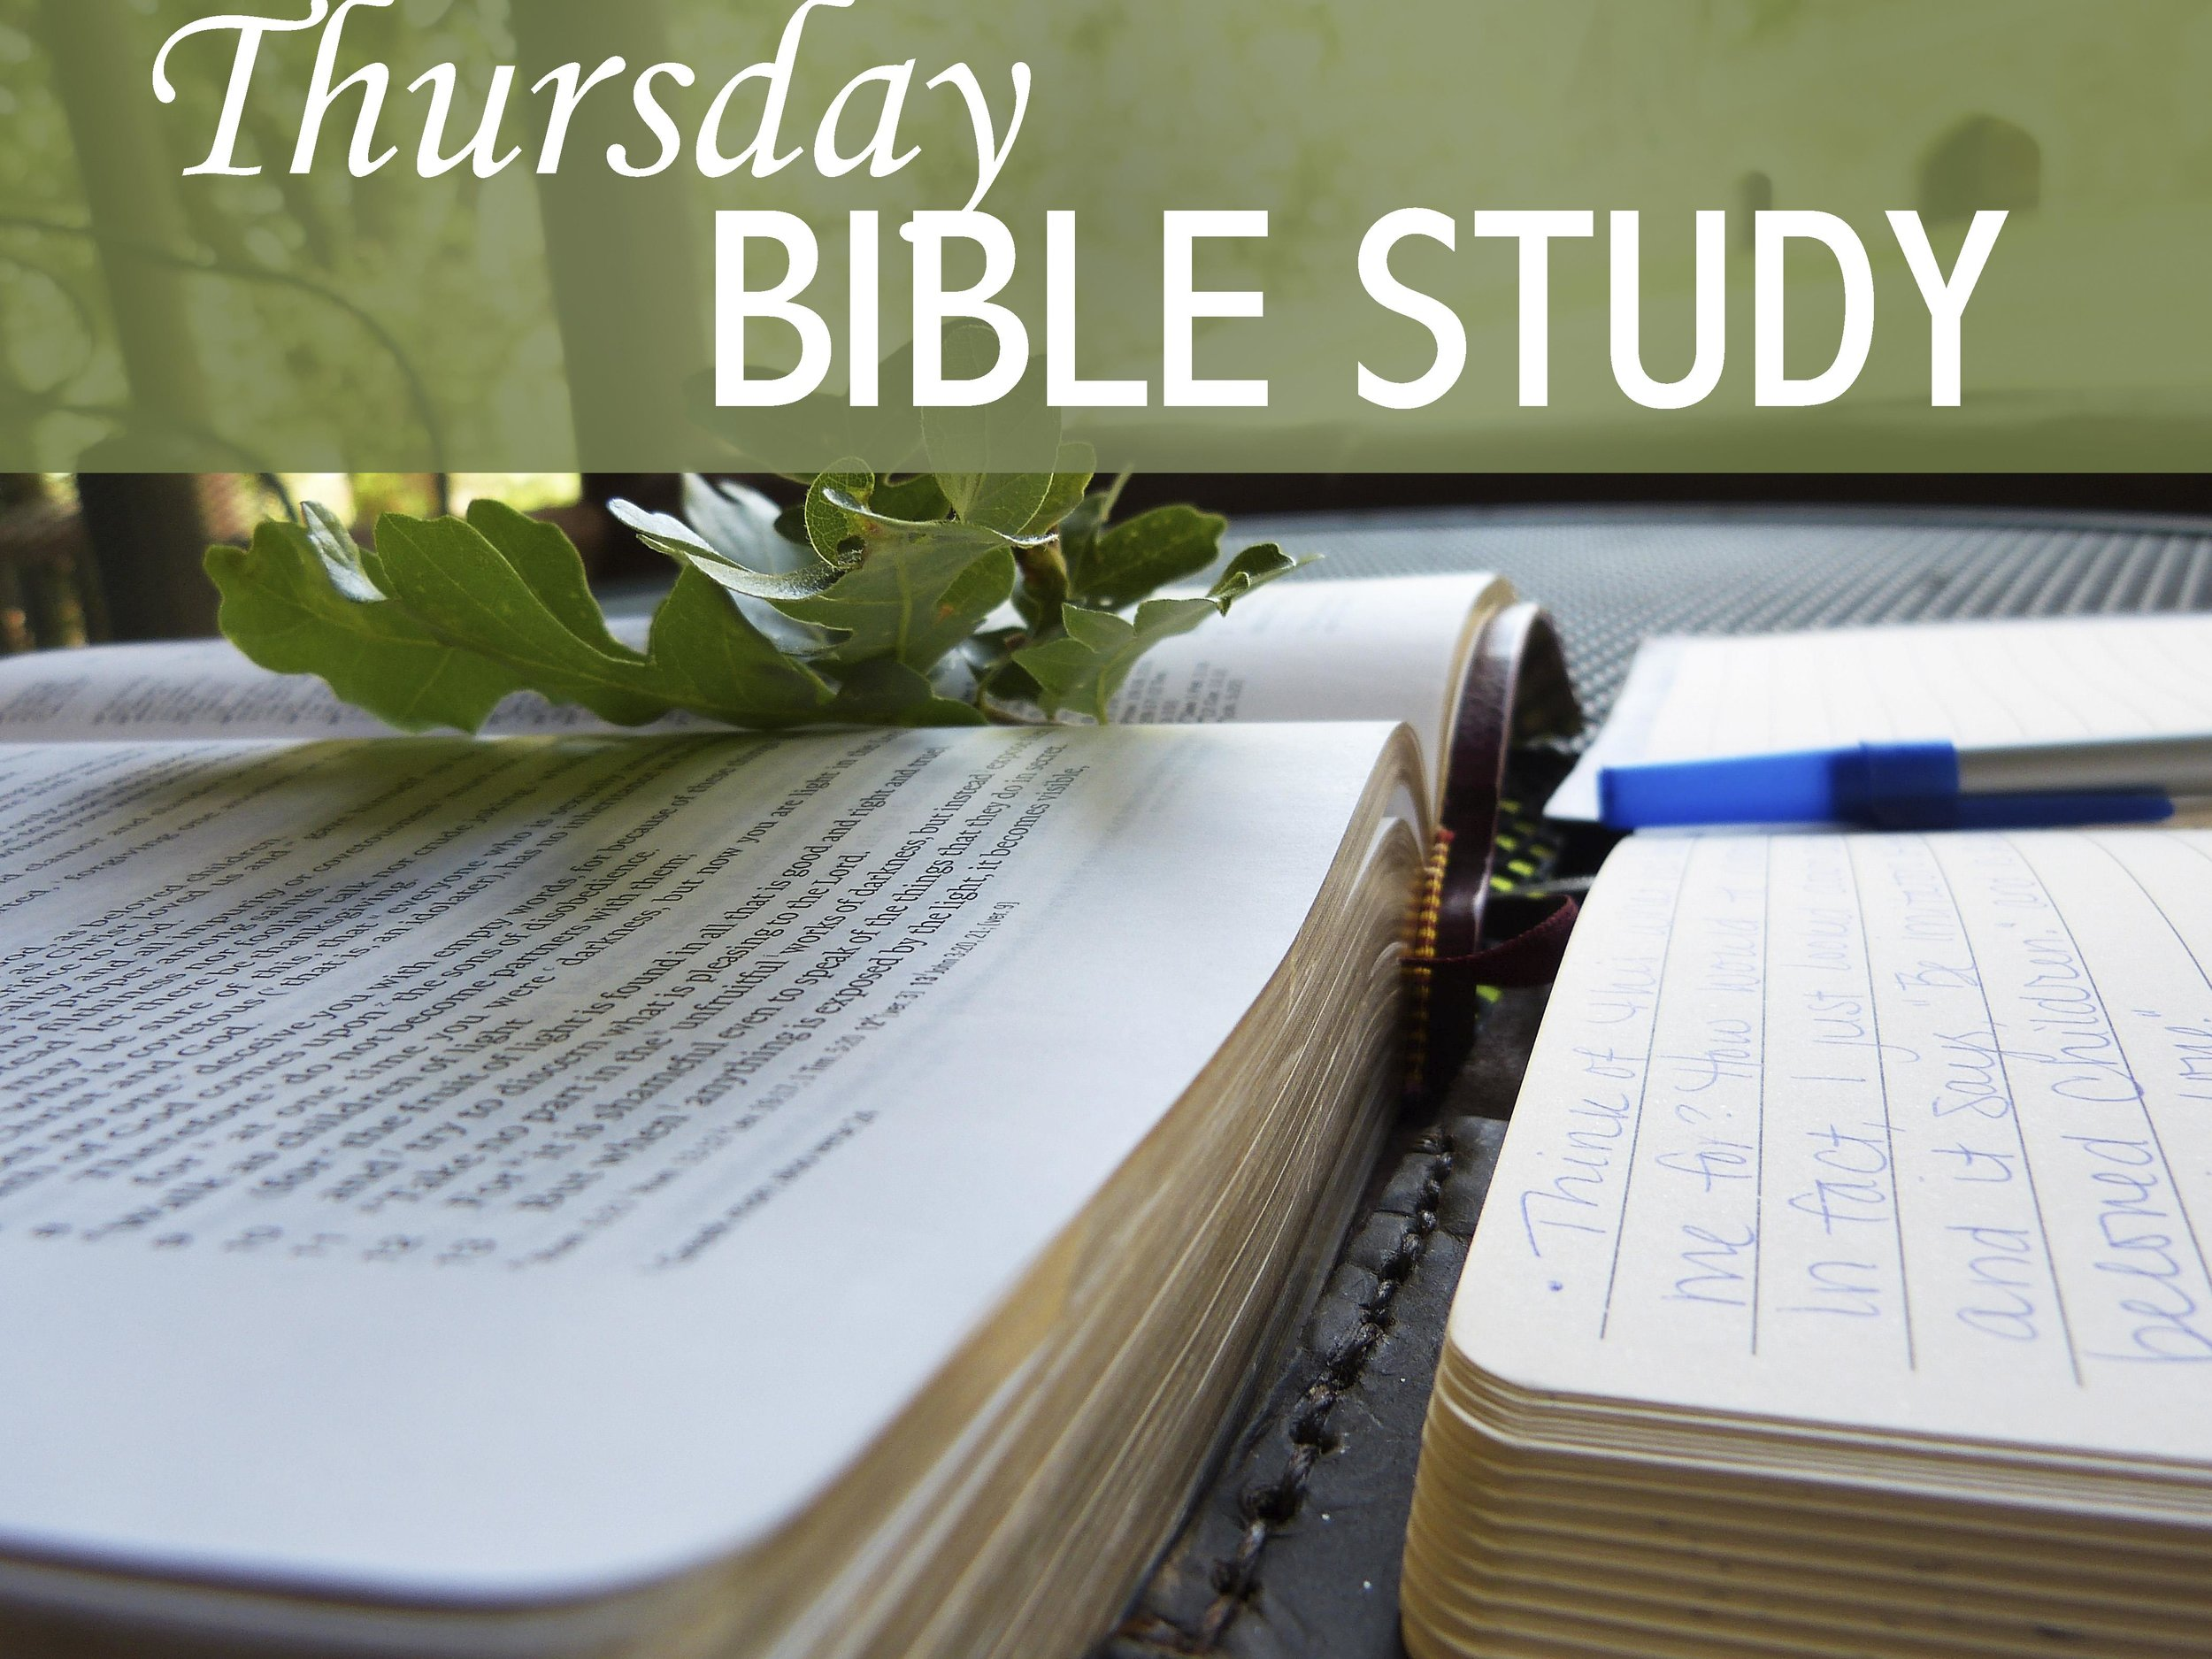 Thursday morning Bible Study - On Thursday mornings at 10:00 a.m. we have a Bible study group that meets in the Parish Hall library. They are currently studying chapters from the book Bible Women. Each week, there is a different topic and new members are always welcomed.